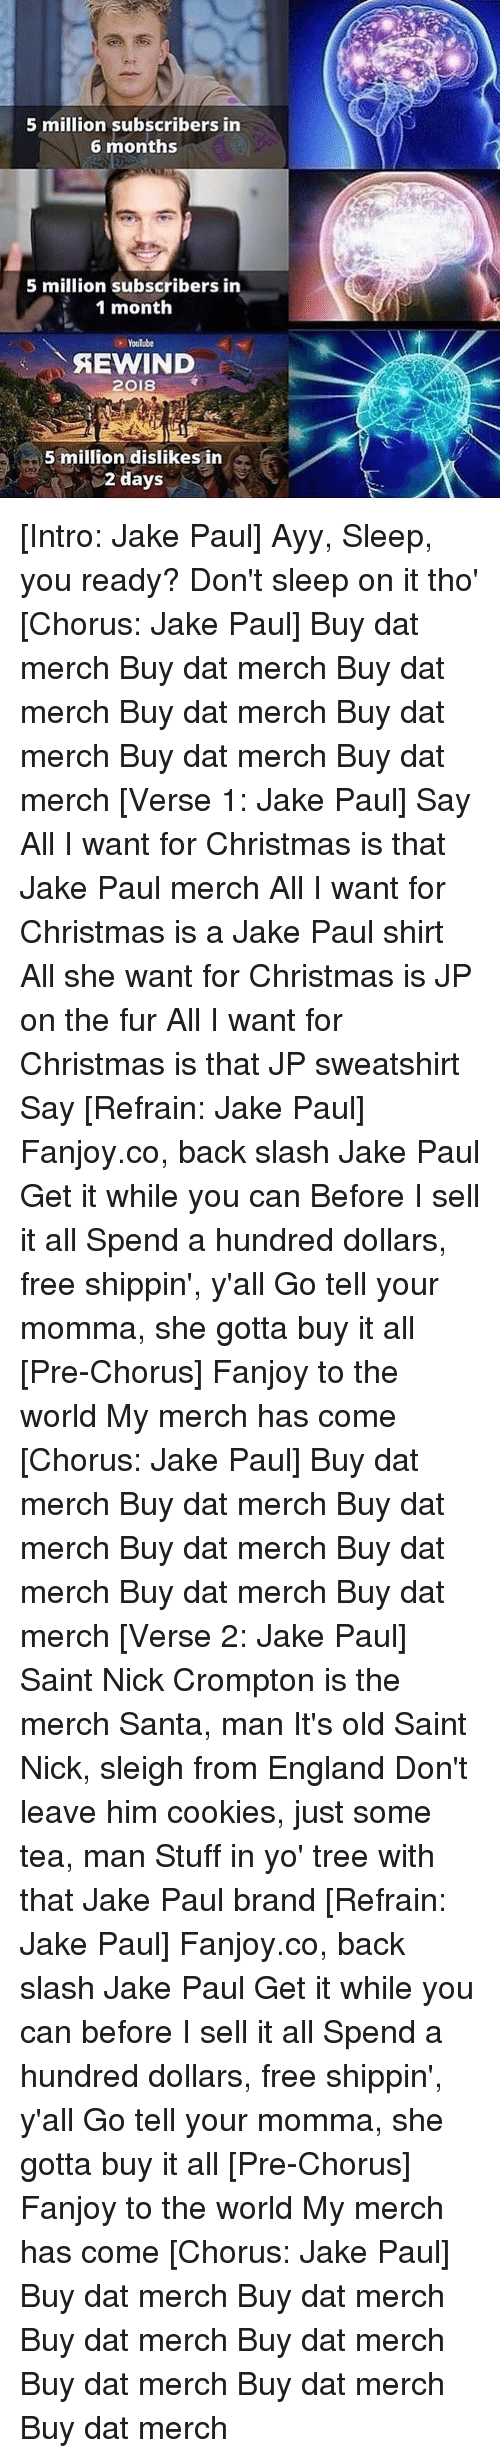 Chorus: 5 million subscribers in  6 months  5 million subscribers in  1 month  Youlube  AEWIND  2018  5 million dislikes in  2 days [Intro: Jake Paul] Ayy, Sleep, you ready? Don't sleep on it tho' [Chorus: Jake Paul] Buy dat merch Buy dat merch Buy dat merch Buy dat merch Buy dat merch Buy dat merch Buy dat merch [Verse 1: Jake Paul] Say All I want for Christmas is that Jake Paul merch All I want for Christmas is a Jake Paul shirt All she want for Christmas is JP on the fur All I want for Christmas is that JP sweatshirt Say [Refrain: Jake Paul] Fanjoy.co, back slash Jake Paul Get it while you can Before I sell it all Spend a hundred dollars, free shippin', y'all Go tell your momma, she gotta buy it all [Pre-Chorus] Fanjoy to the world My merch has come [Chorus: Jake Paul] Buy dat merch Buy dat merch Buy dat merch Buy dat merch Buy dat merch Buy dat merch Buy dat merch [Verse 2: Jake Paul] Saint Nick Crompton is the merch Santa, man It's old Saint Nick, sleigh from England Don't leave him cookies, just some tea, man Stuff in yo' tree with that Jake Paul brand [Refrain: Jake Paul] Fanjoy.co, back slash Jake Paul Get it while you can before I sell it all Spend a hundred dollars, free shippin', y'all Go tell your momma, she gotta buy it all [Pre-Chorus] Fanjoy to the world My merch has come [Chorus: Jake Paul] Buy dat merch Buy dat merch Buy dat merch Buy dat merch Buy dat merch Buy dat merch Buy dat merch